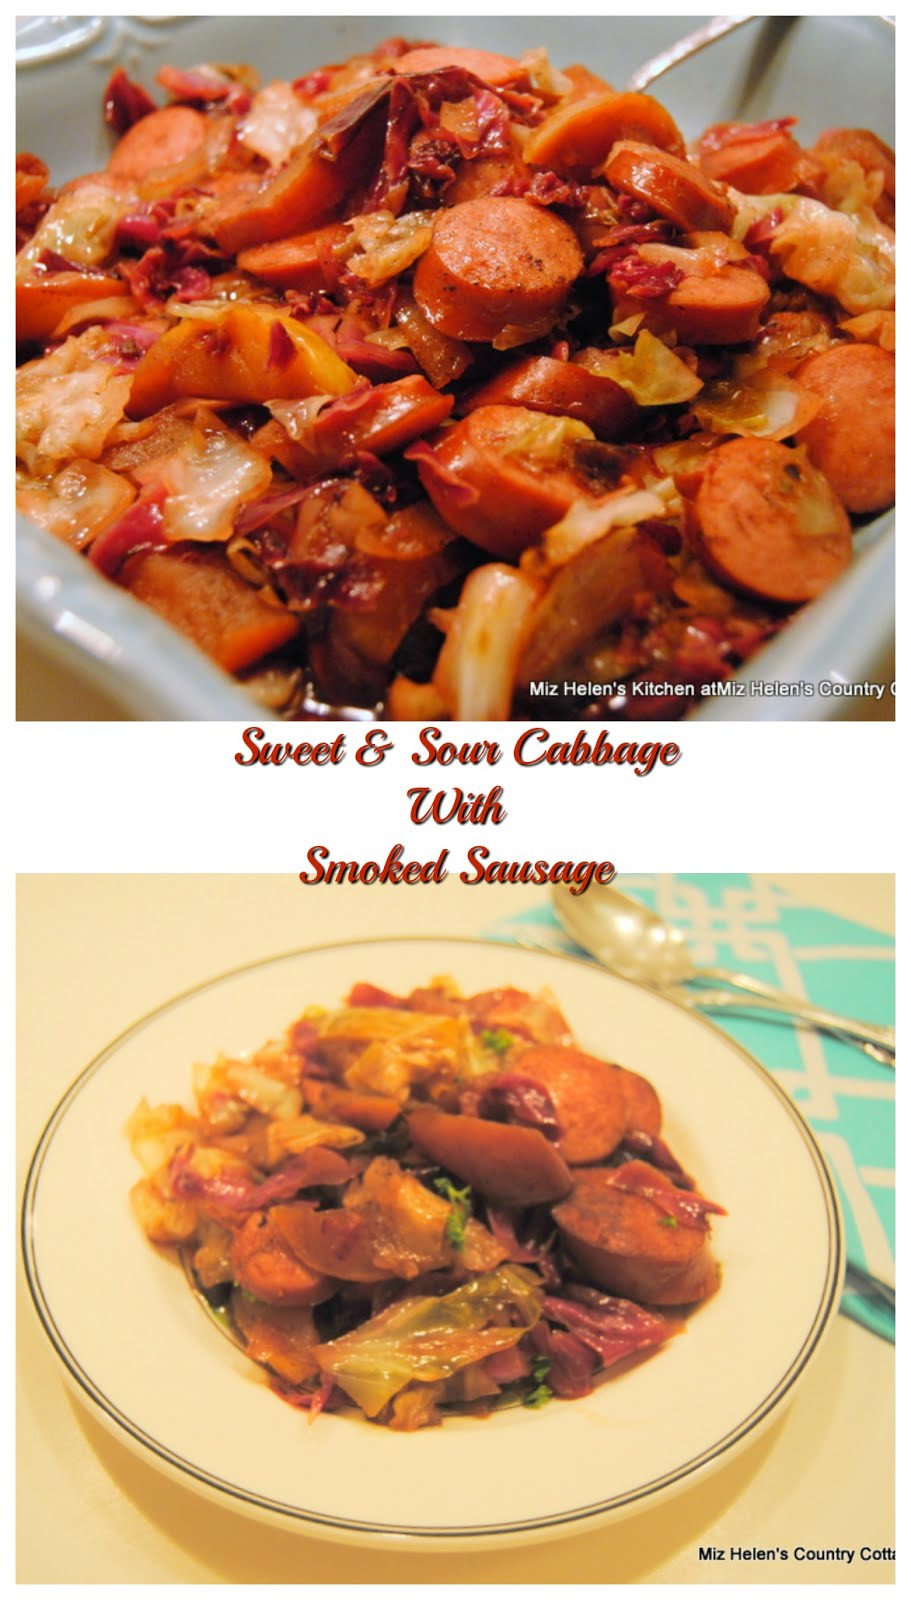 Sweet and Sour Cabbage with Smoked Sausage